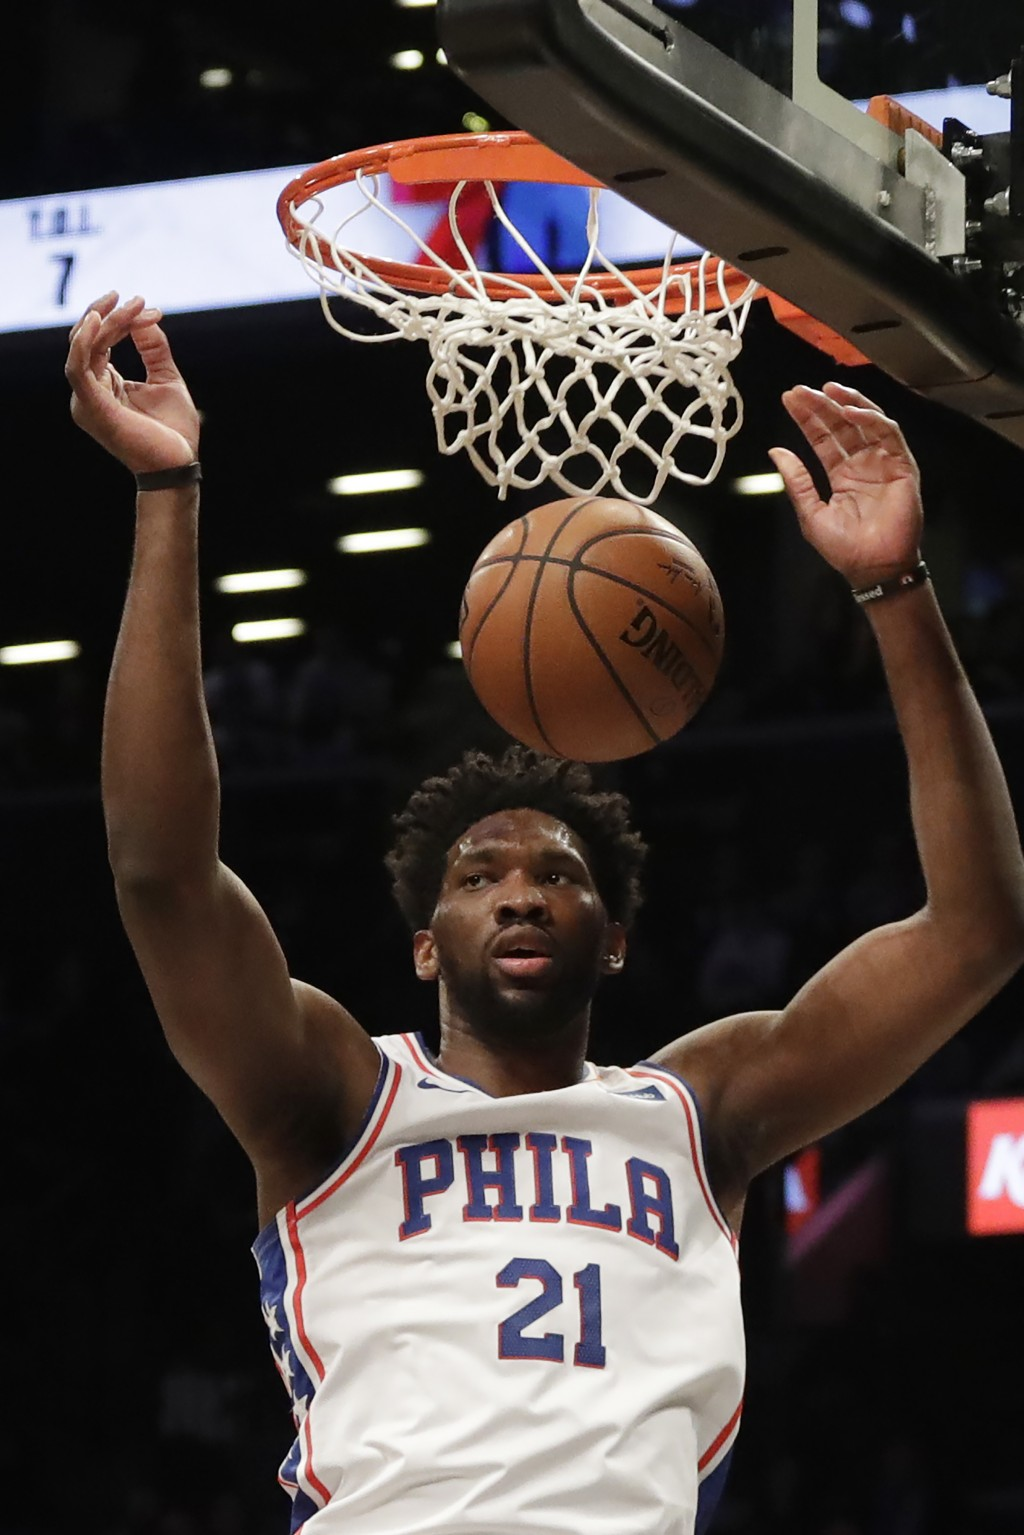 Philadelphia 76ers Joel Embiid (21) dunks in the first quarter of a basketball game against the Brooklyn Nets, Sunday, Nov. 25, 2018, in New York. (AP